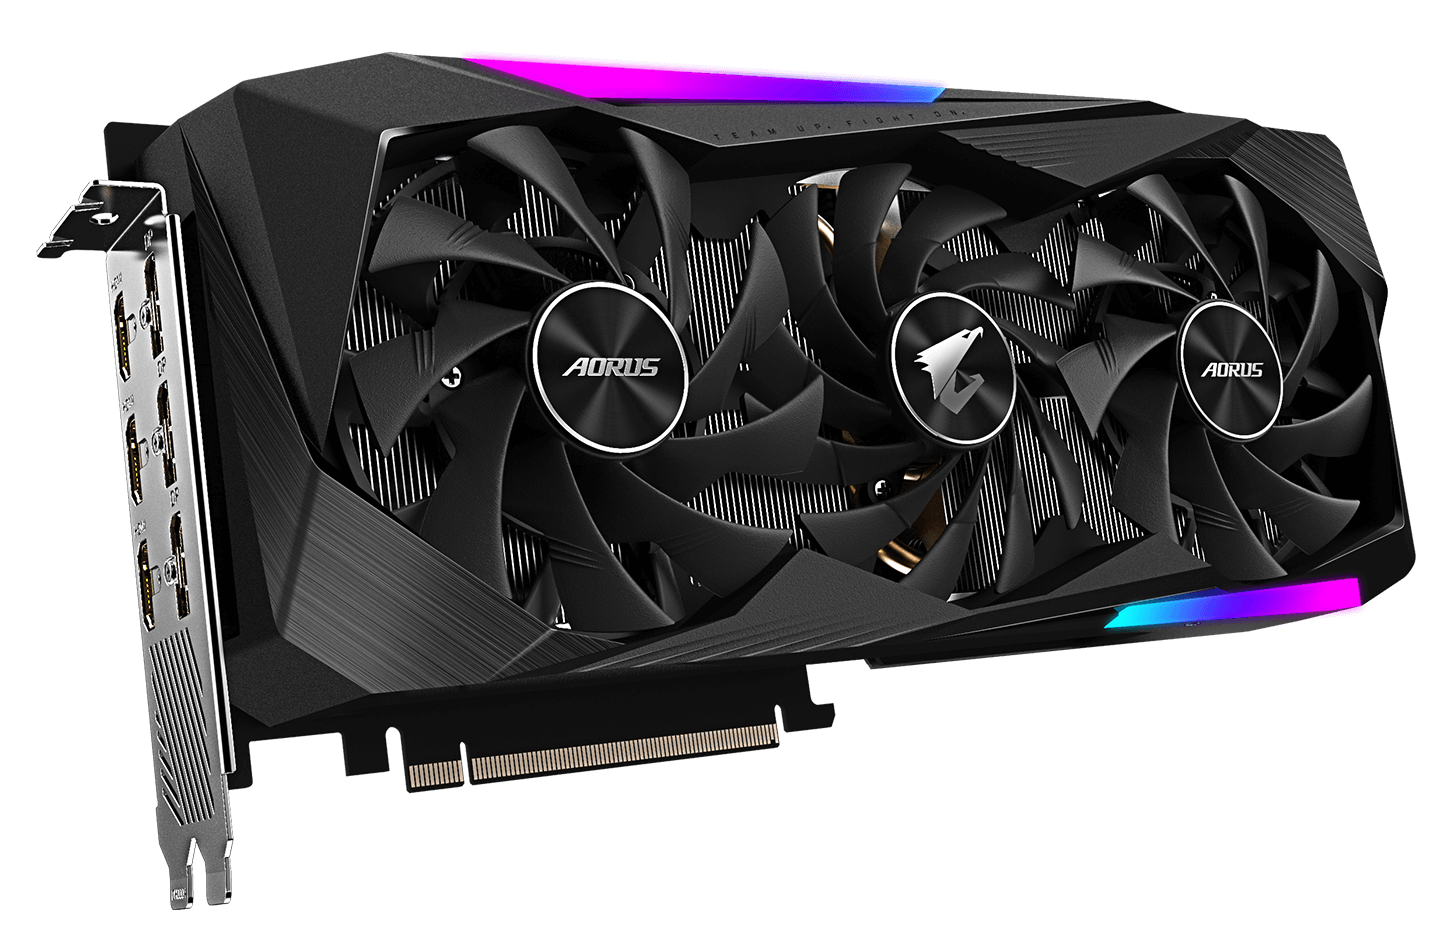 AORUS GeForce RTX™ 3070 MASTER 8G (rev. 1.0/1.1) Key Features | Graphics  Card - GIGABYTE Global